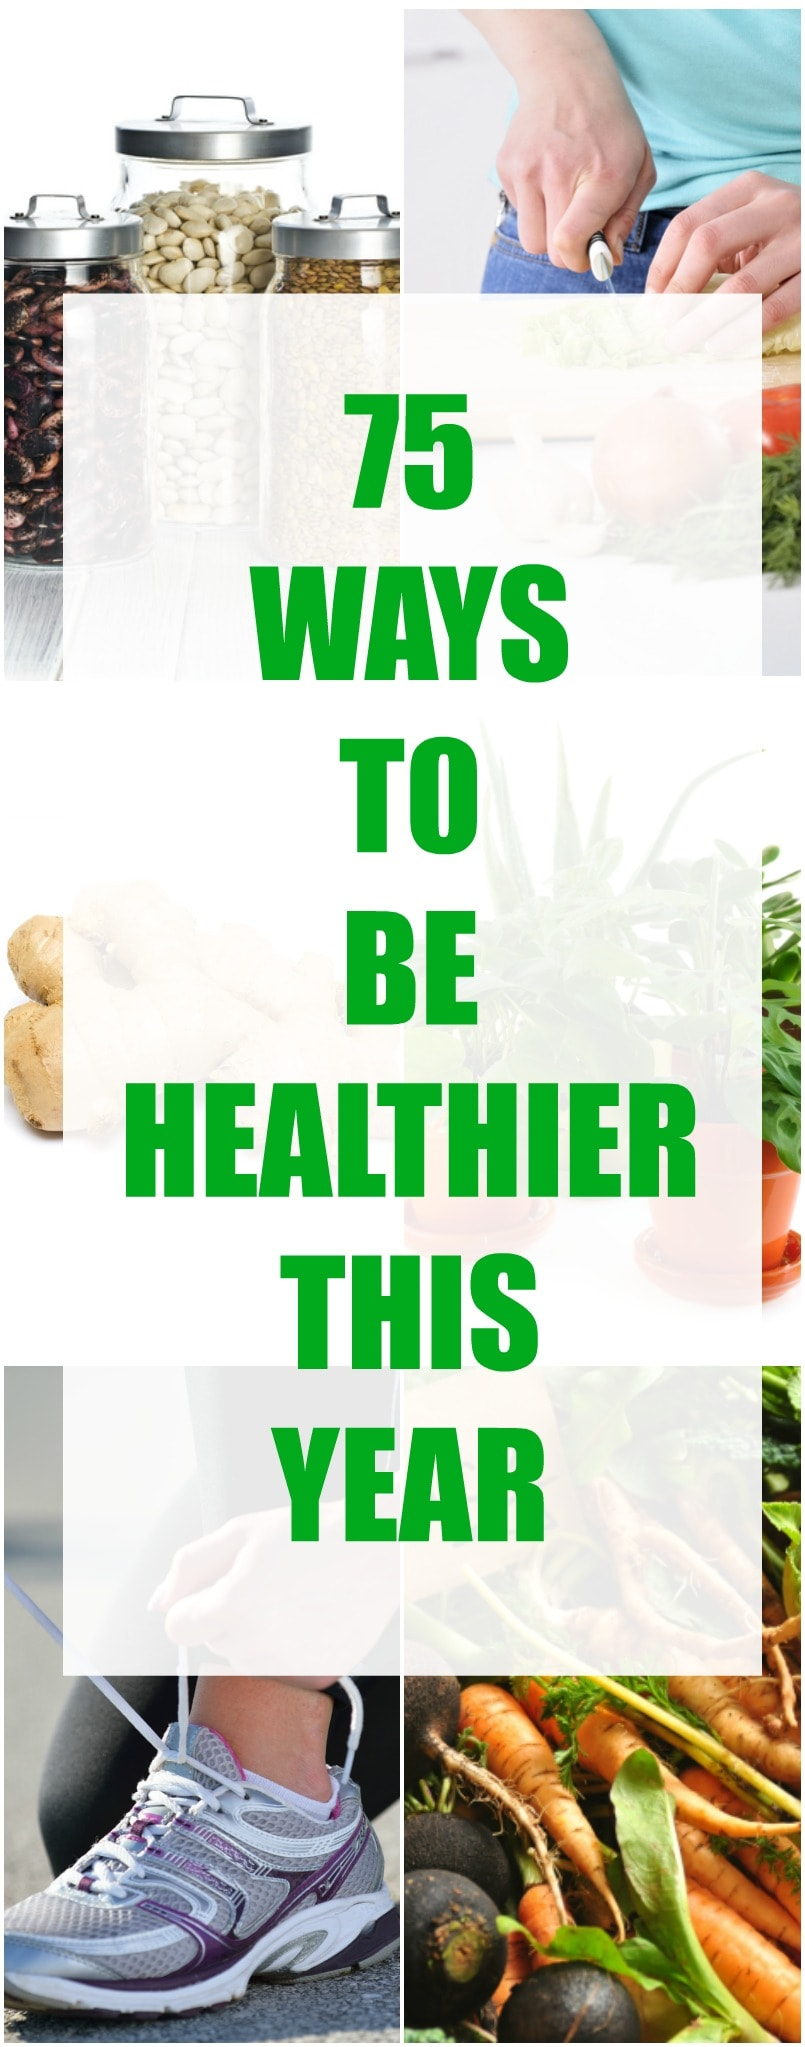 75 Ways to Be Healthier This Year